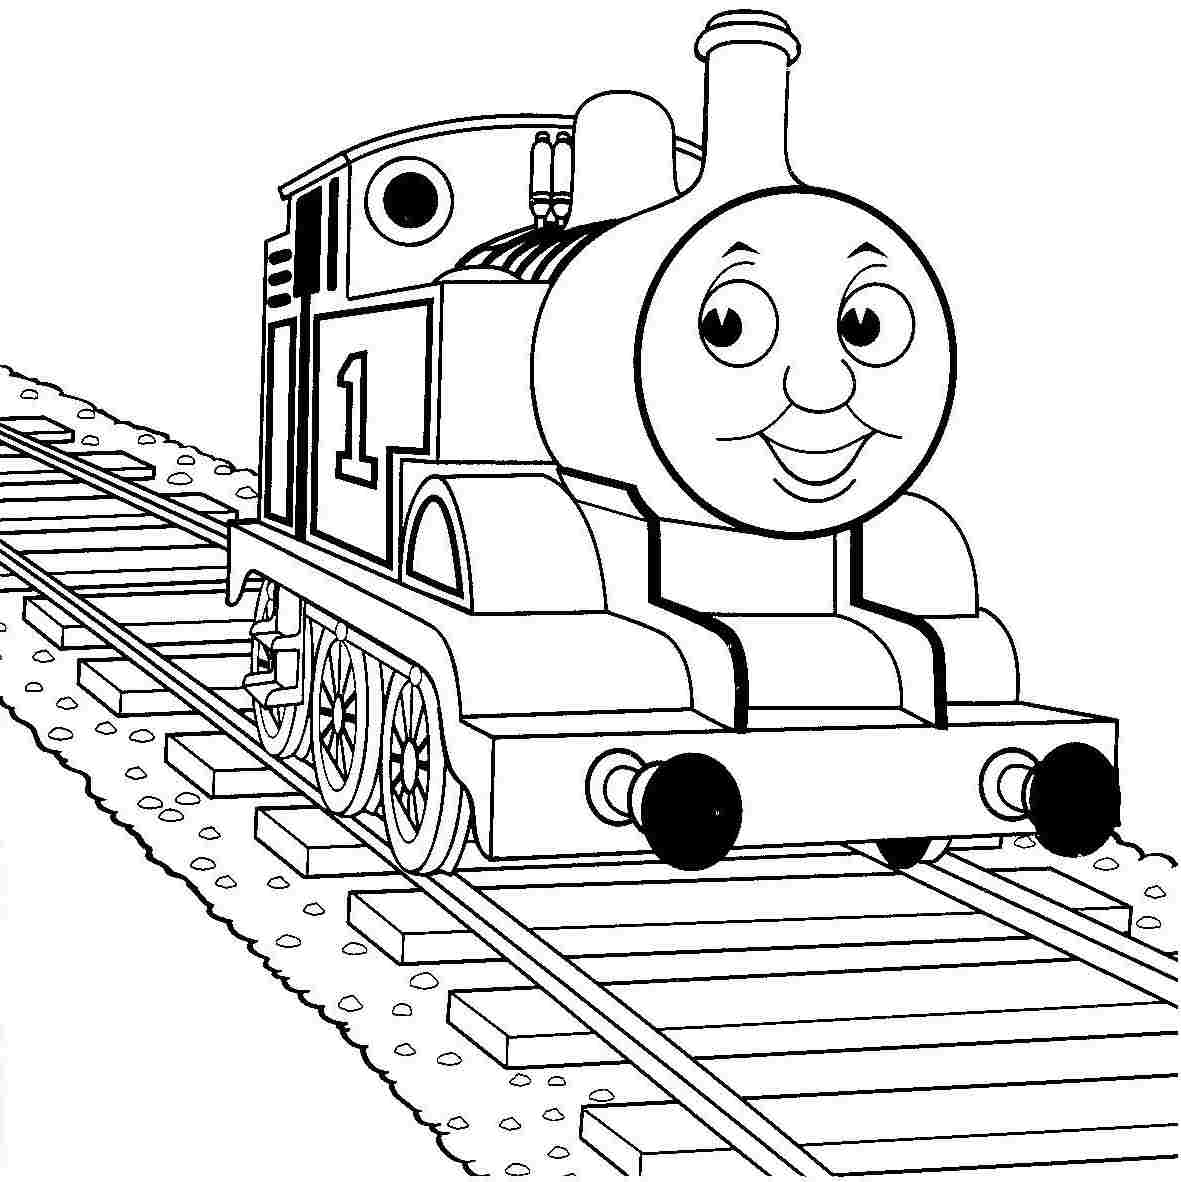 train engine coloring page train engine coloring pages realistic coloring pages engine page train coloring